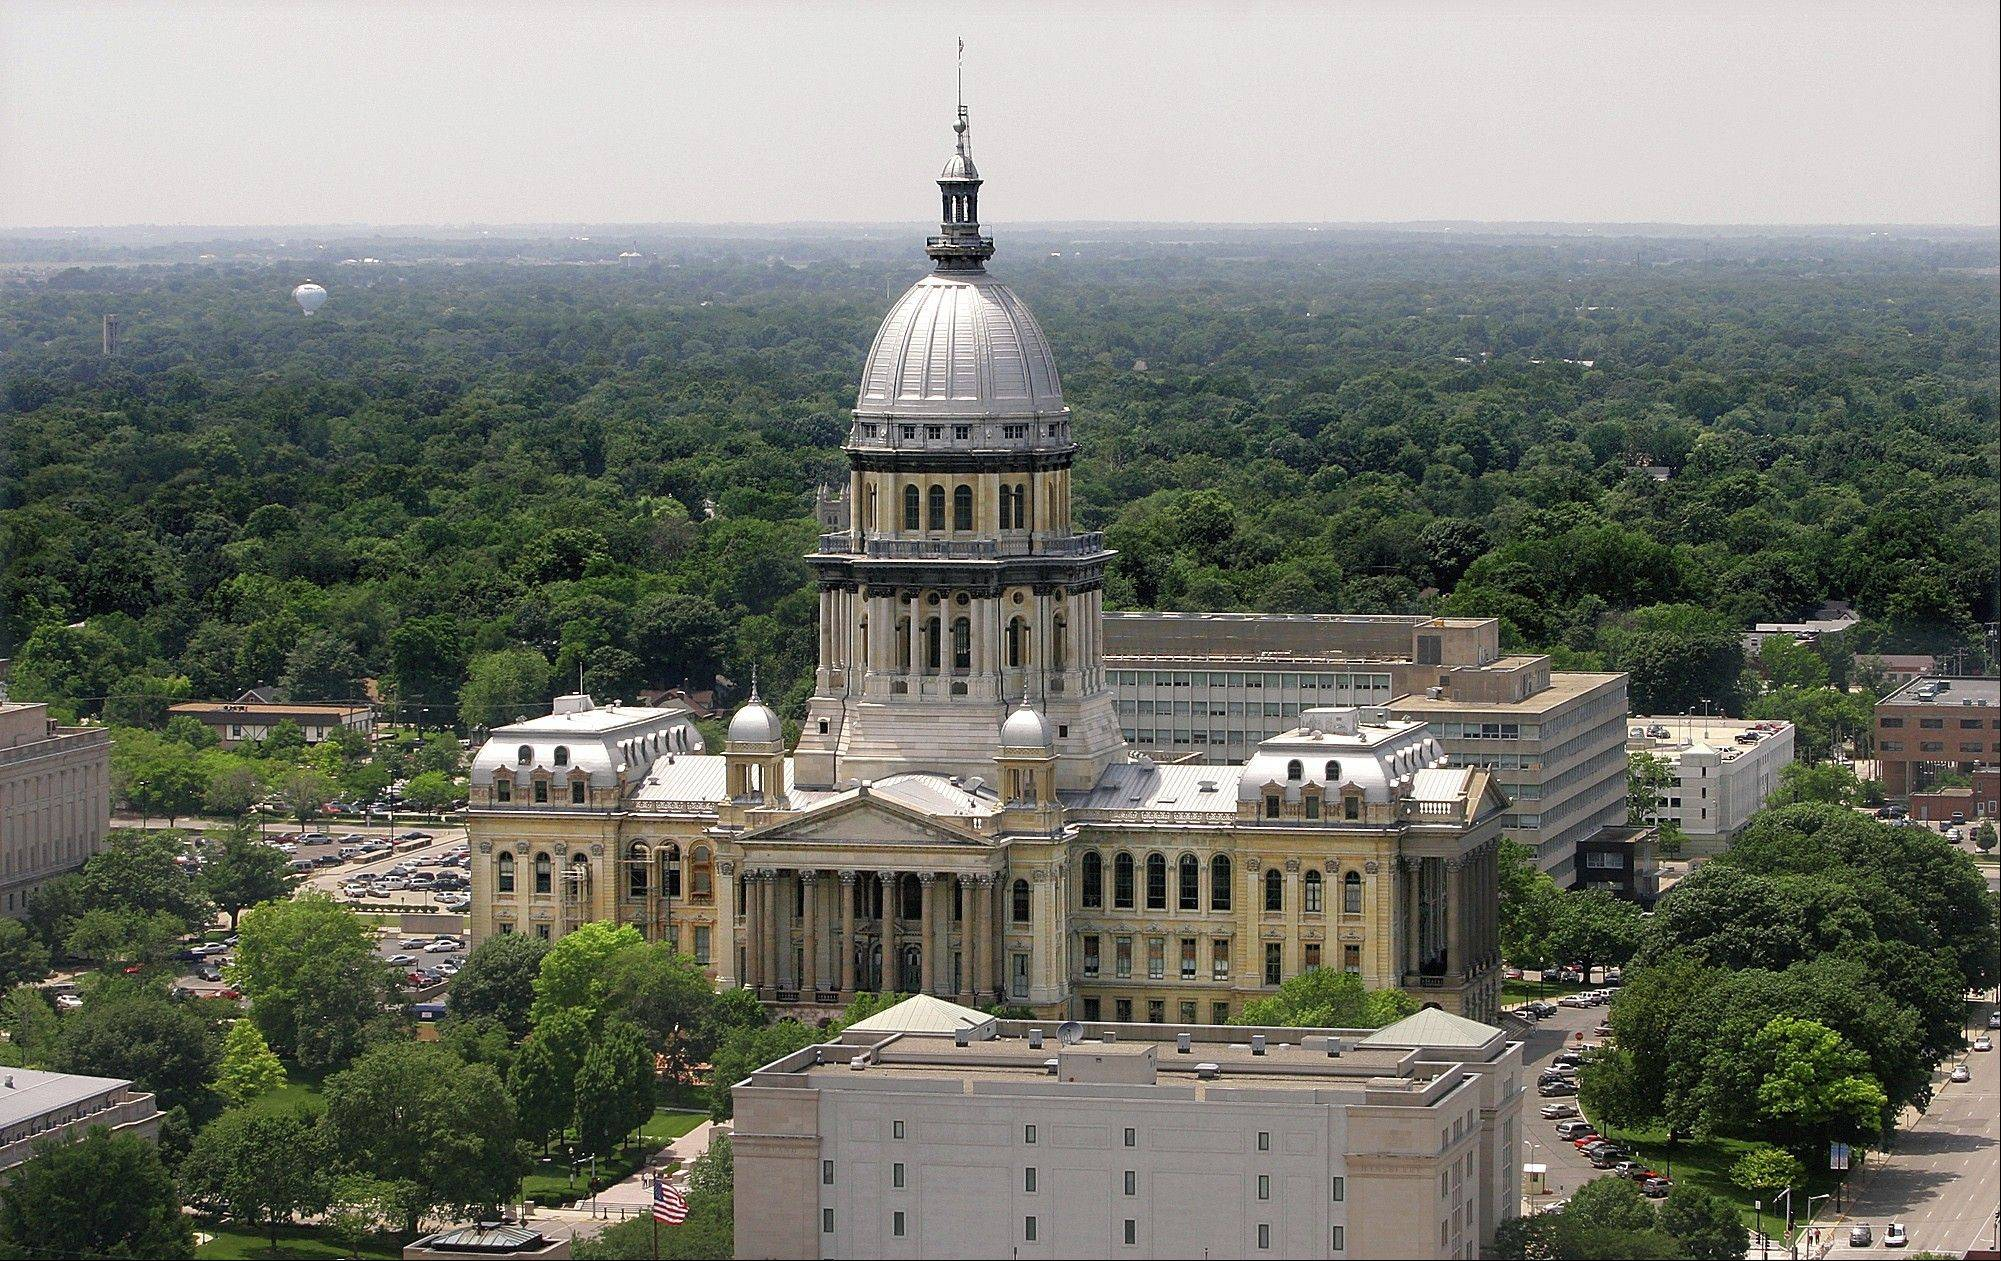 Illinois lawmakers Tuesday began the process of trying to approve gay marriage in Illinois.